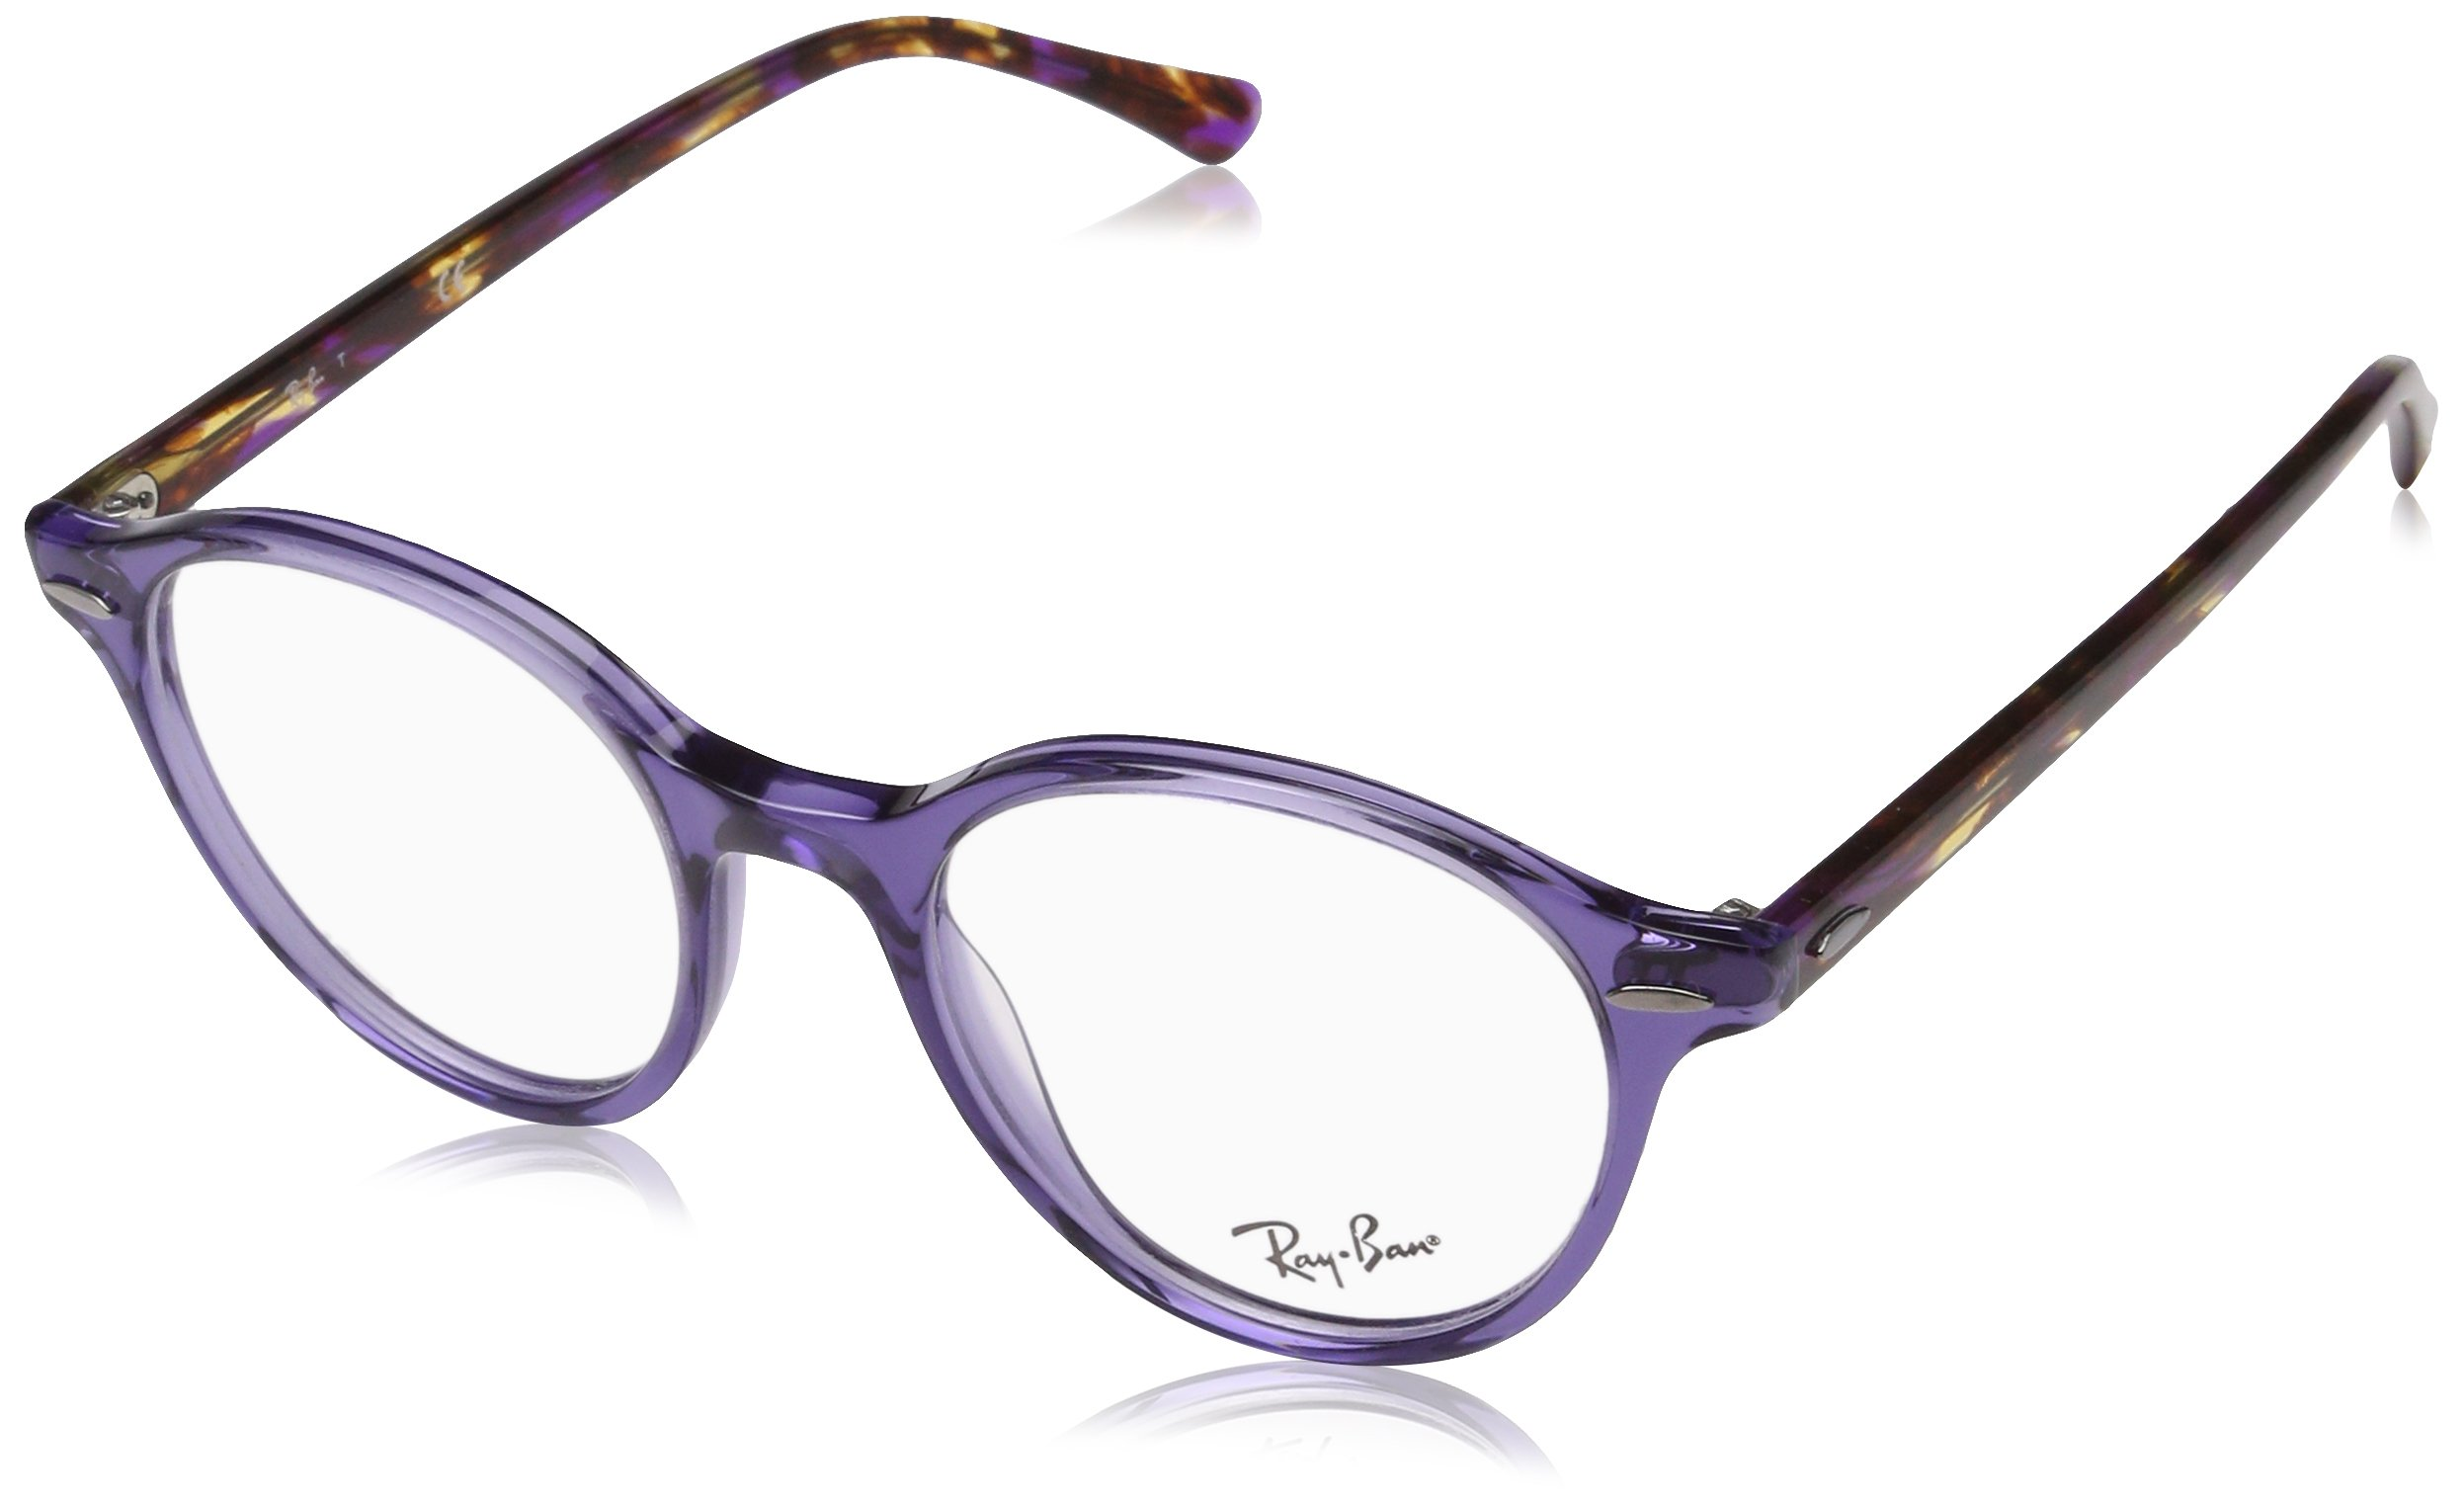 Ray-Ban Unisex 0RX7118 50mm Transparent Violet One Size by Ray-Ban